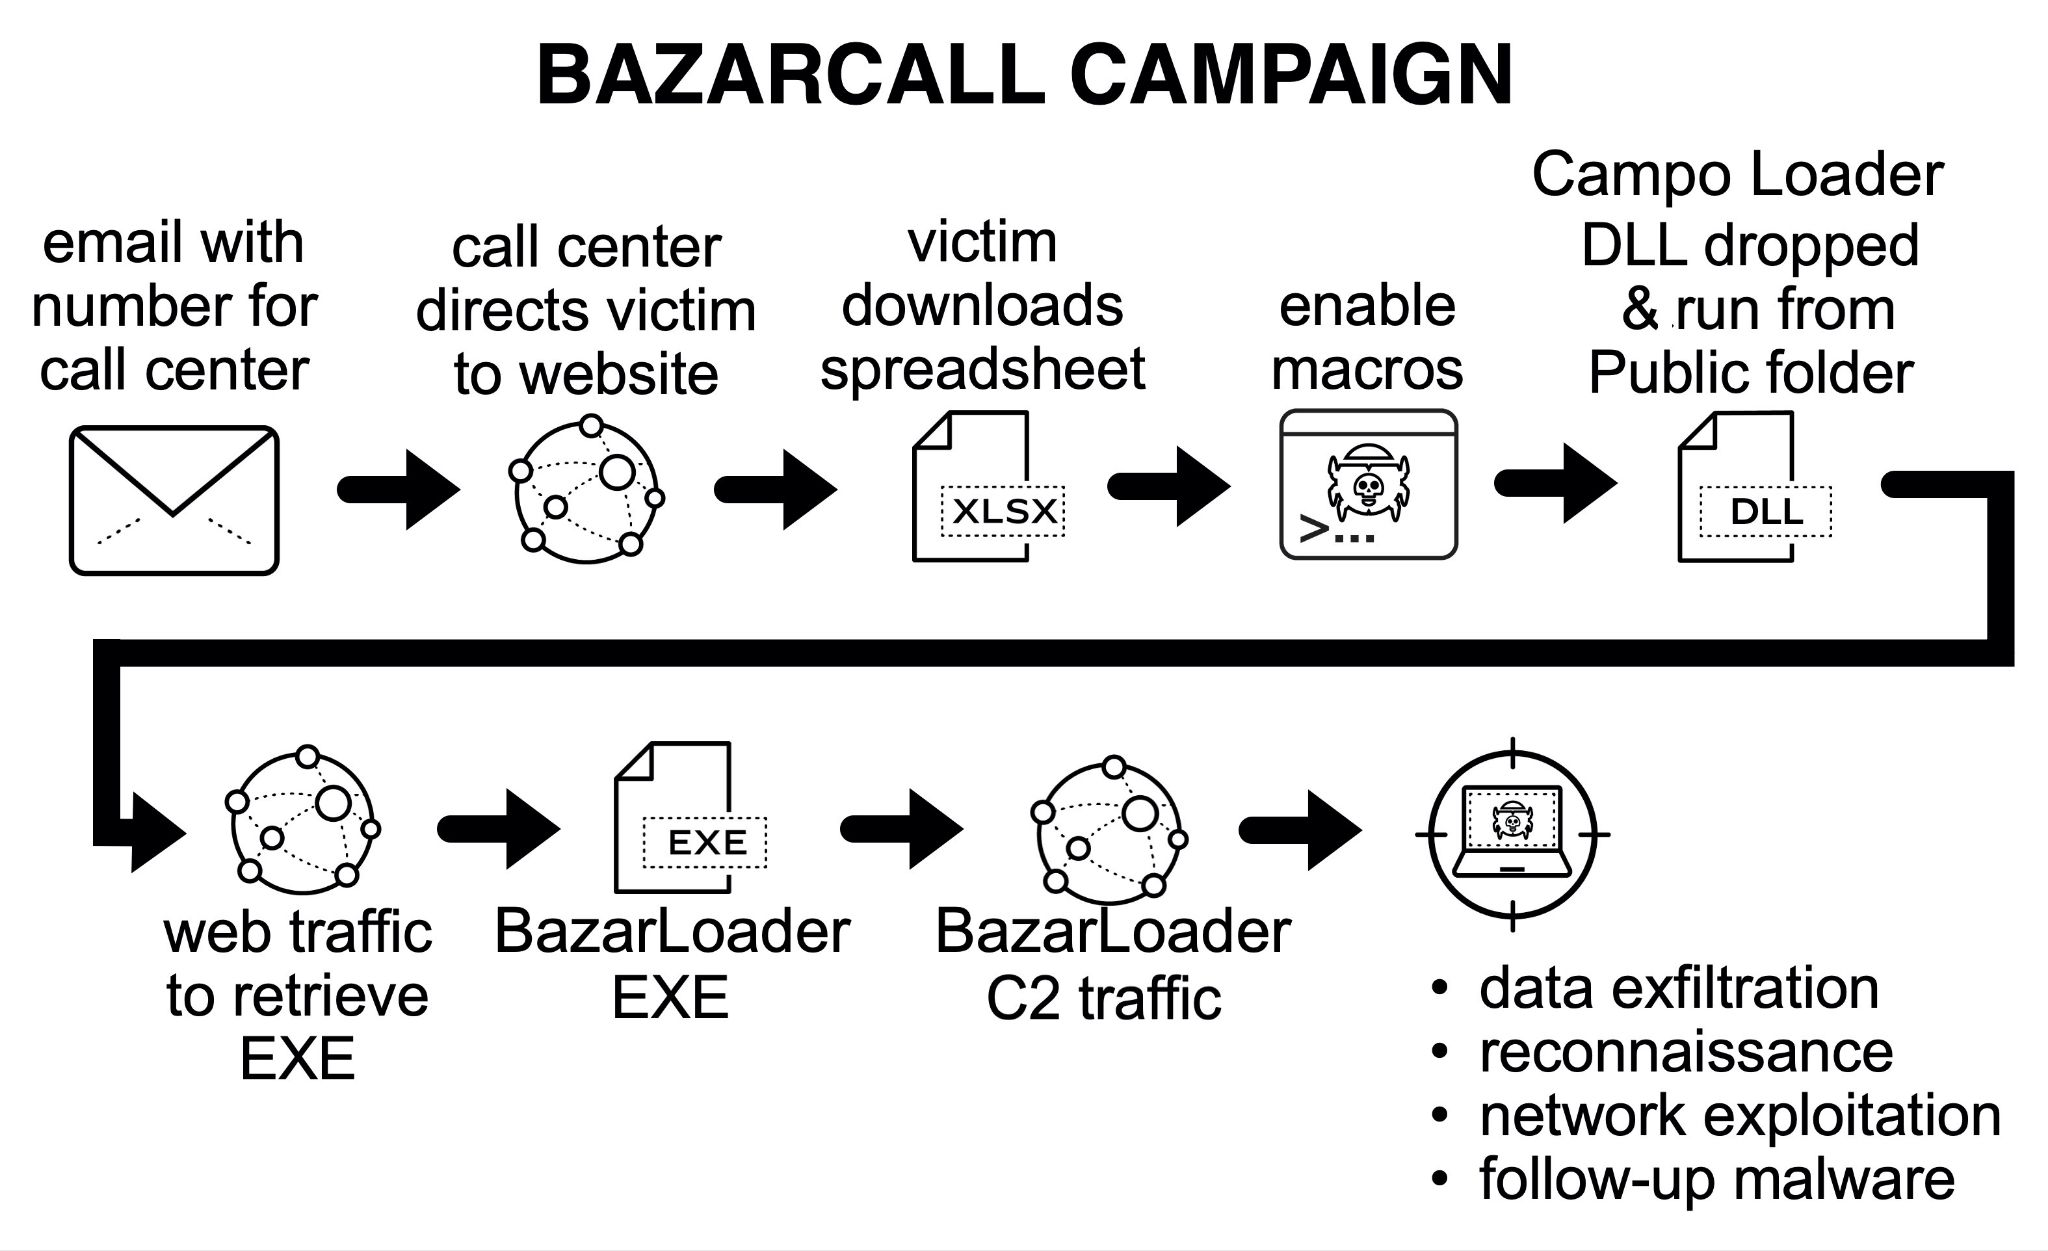 BazarCall flow chart campaign shows victims led through steps that infect their system with BazarLoader malware.